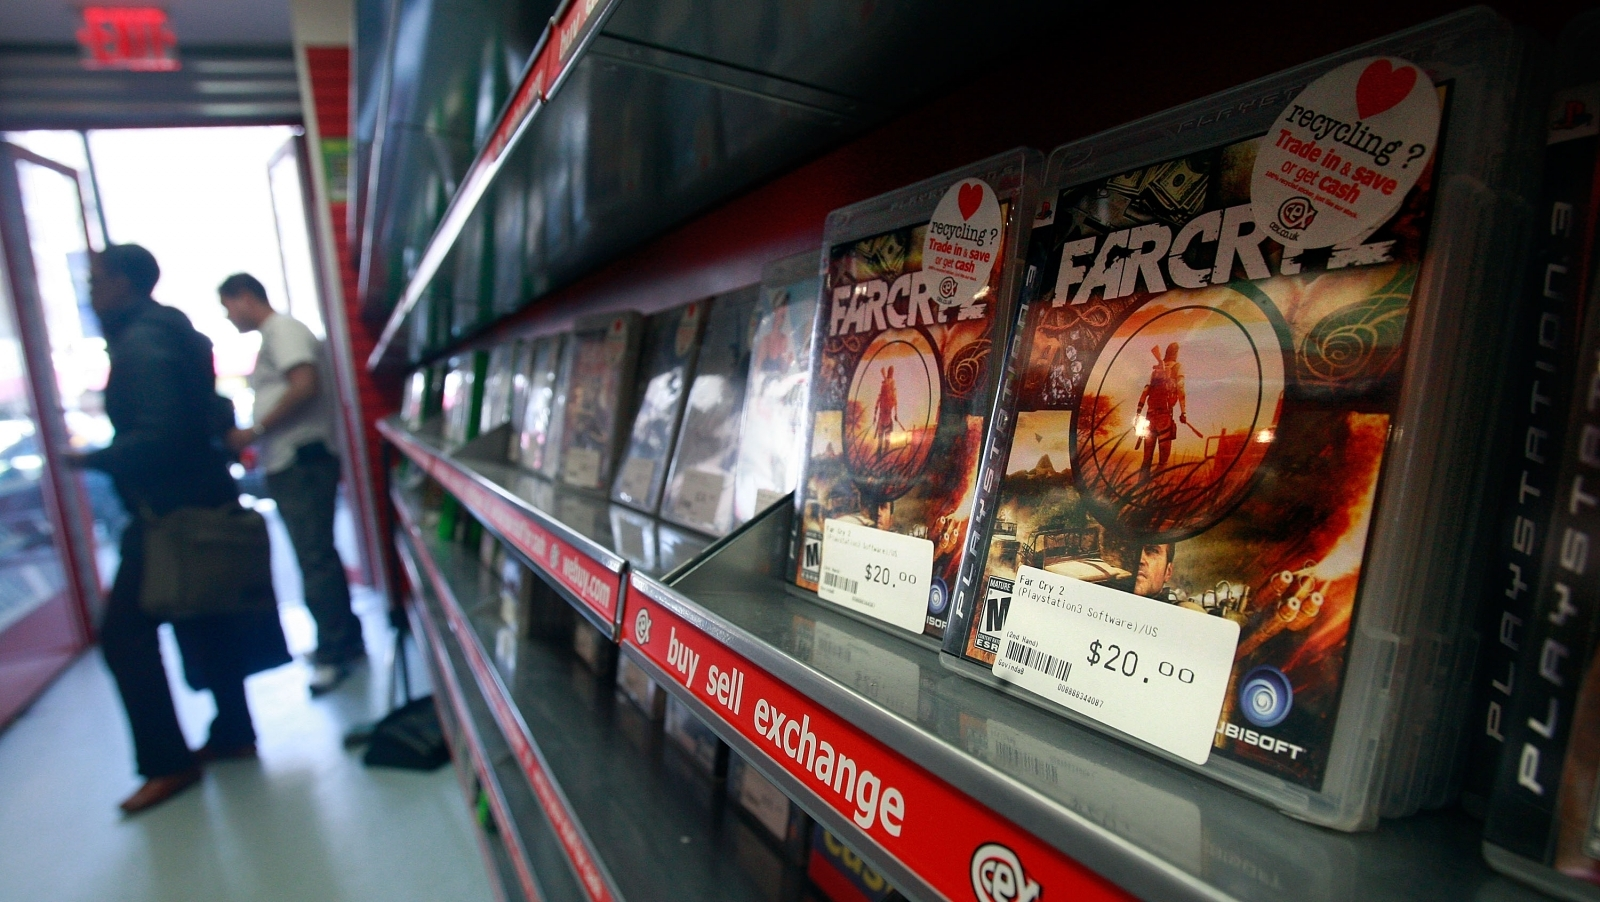 Customer data stolen at games store Cex